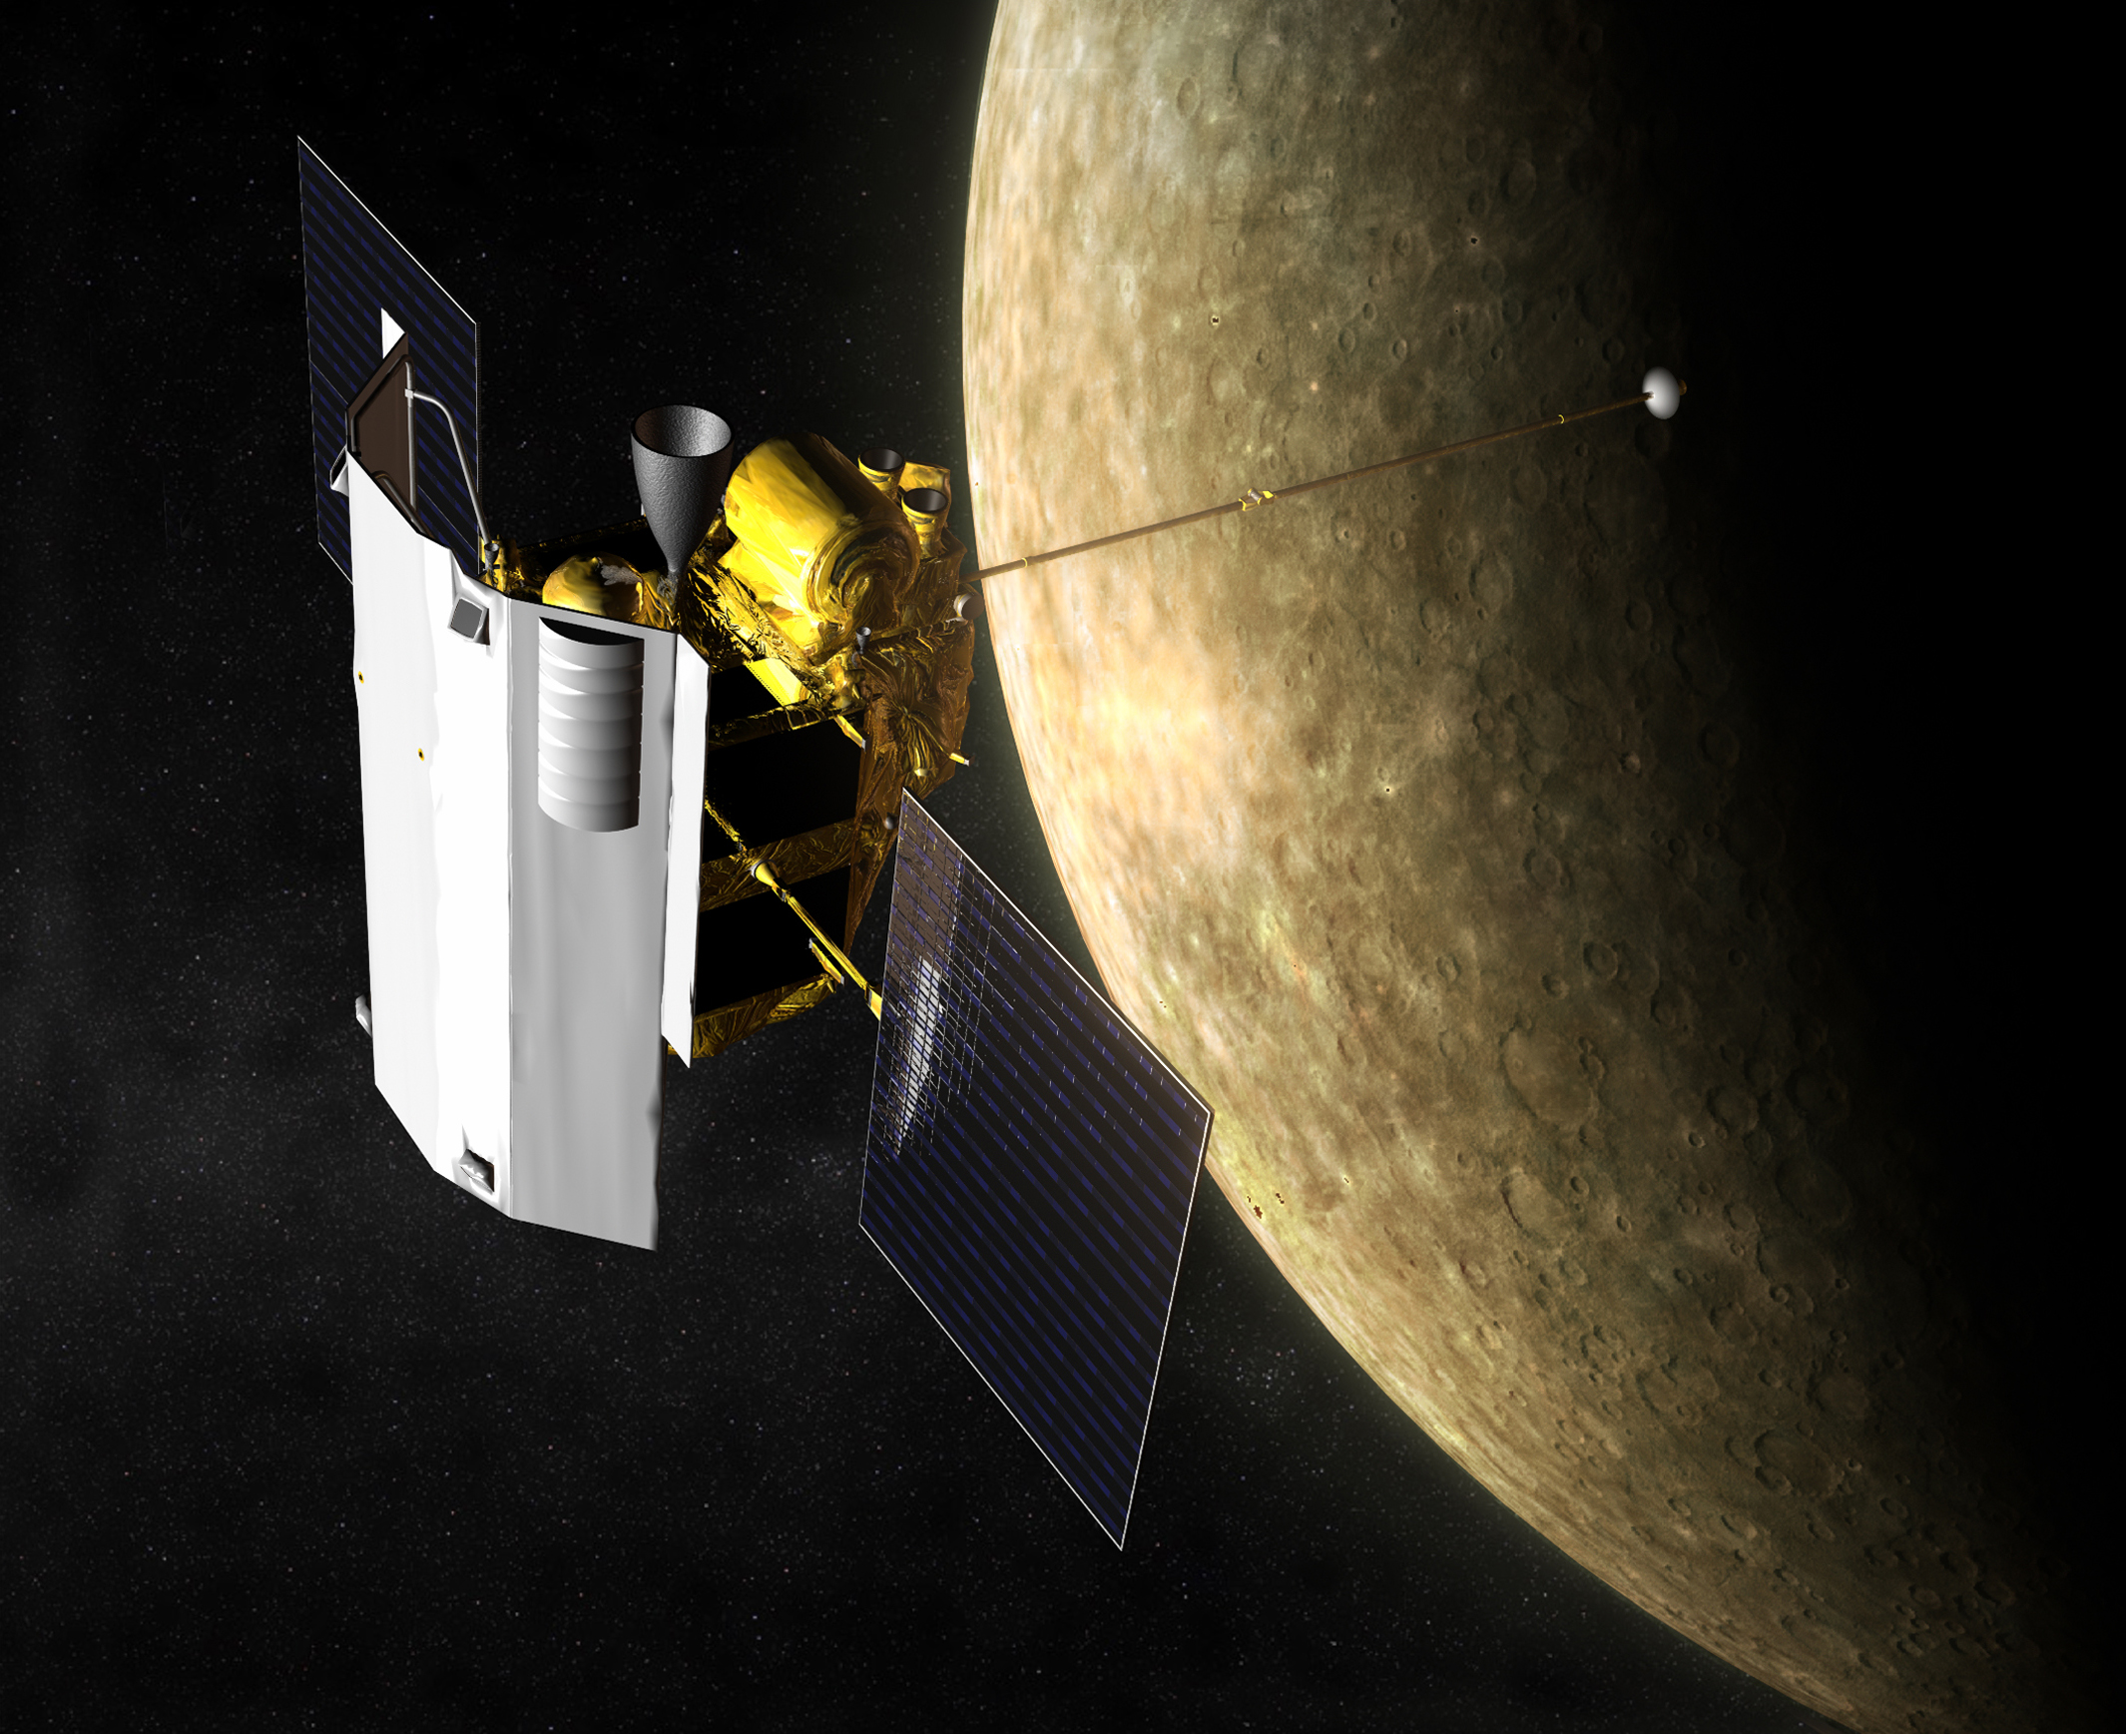 NASA Mercury Probe Trying to Survive for Another Month